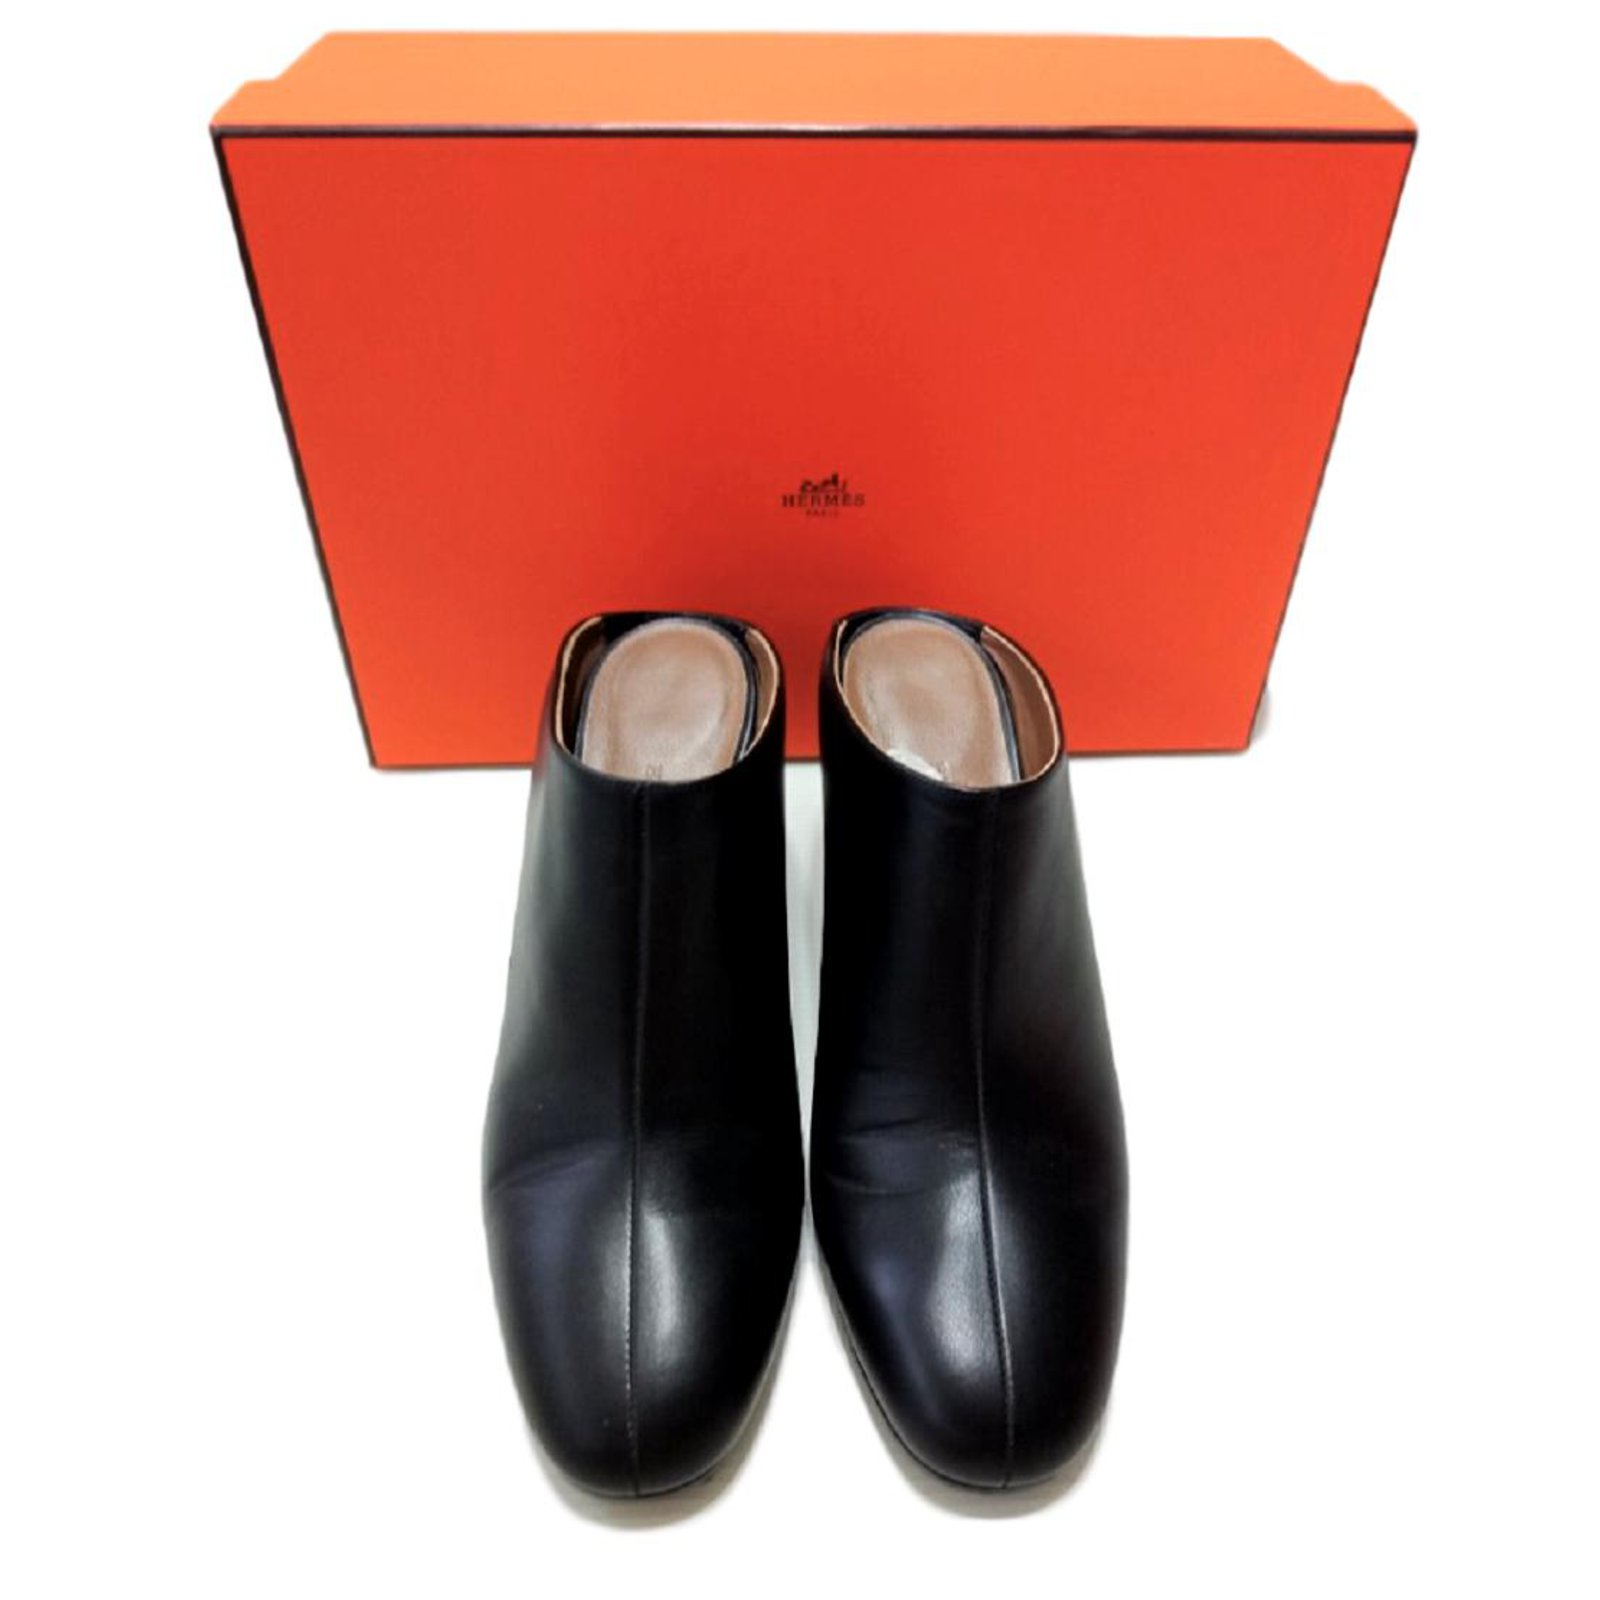 53e0e2d1c453 Hermès Hermes Black slip on wedge mules shoes Wedge mules Leather Black  ref.108774